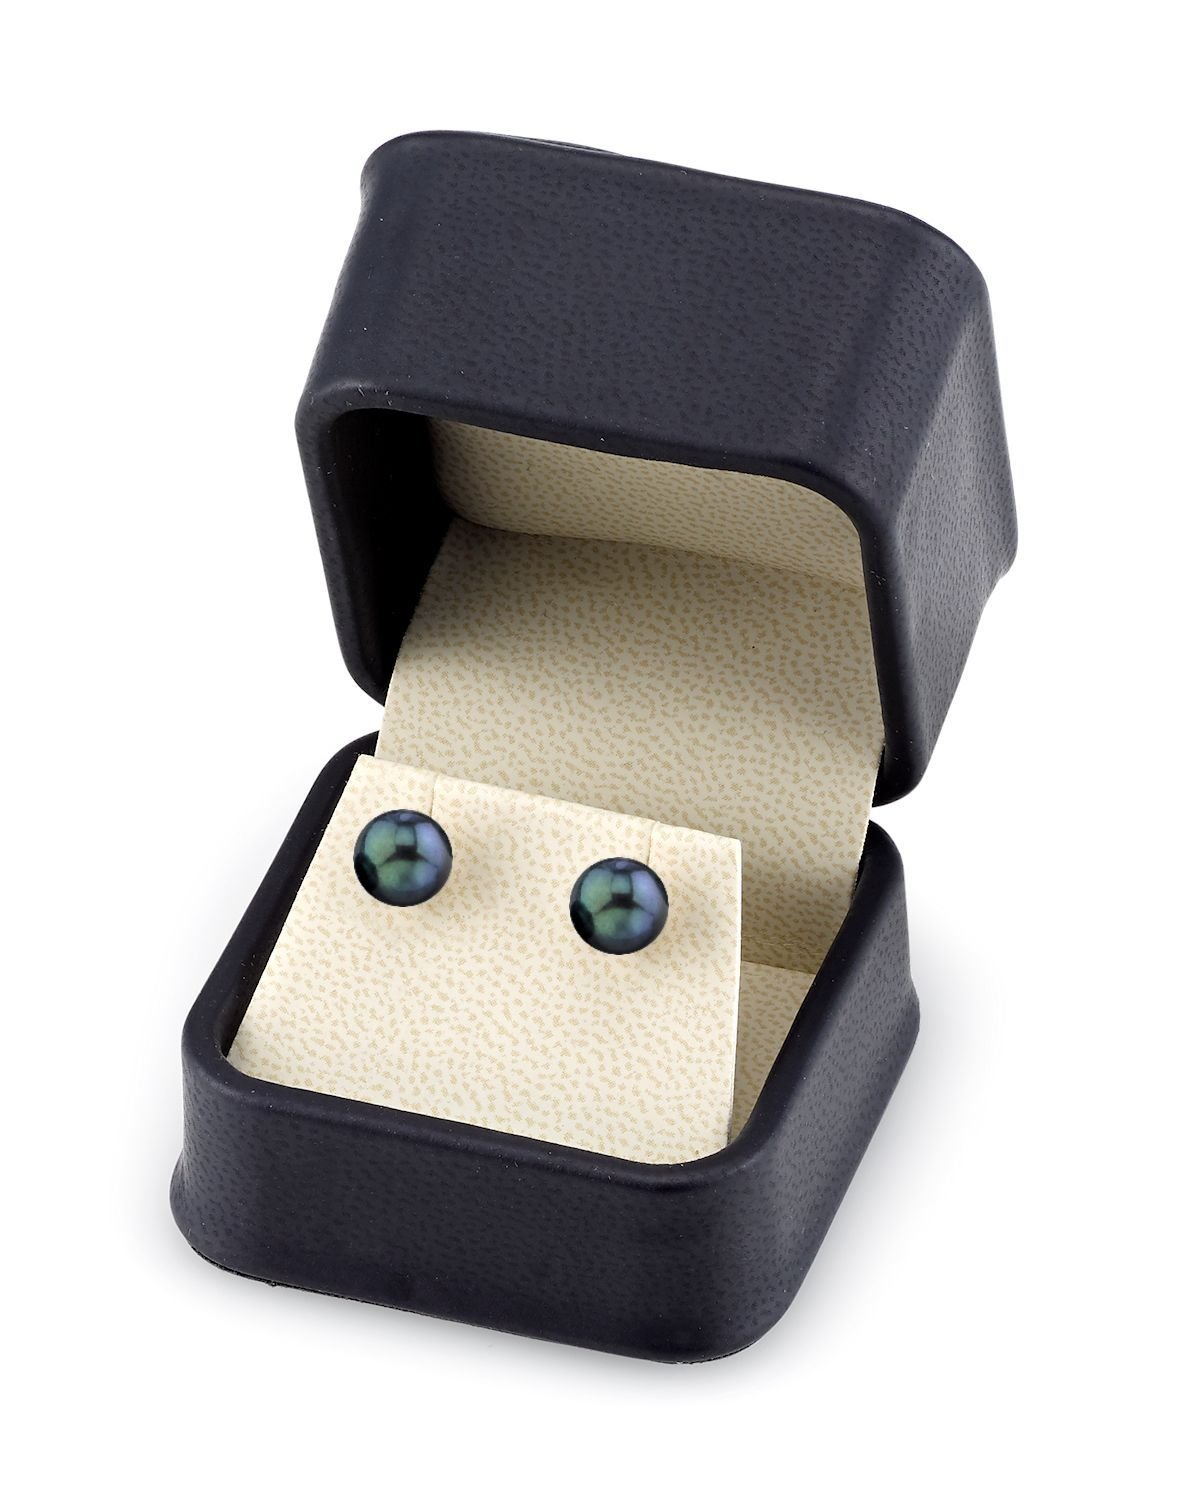 14K Gold Screwback 8.0-8.5mm Black Akoya Cultured Pearl Stud Earrings - AAA Quality by The Pearl Source (Image #3)